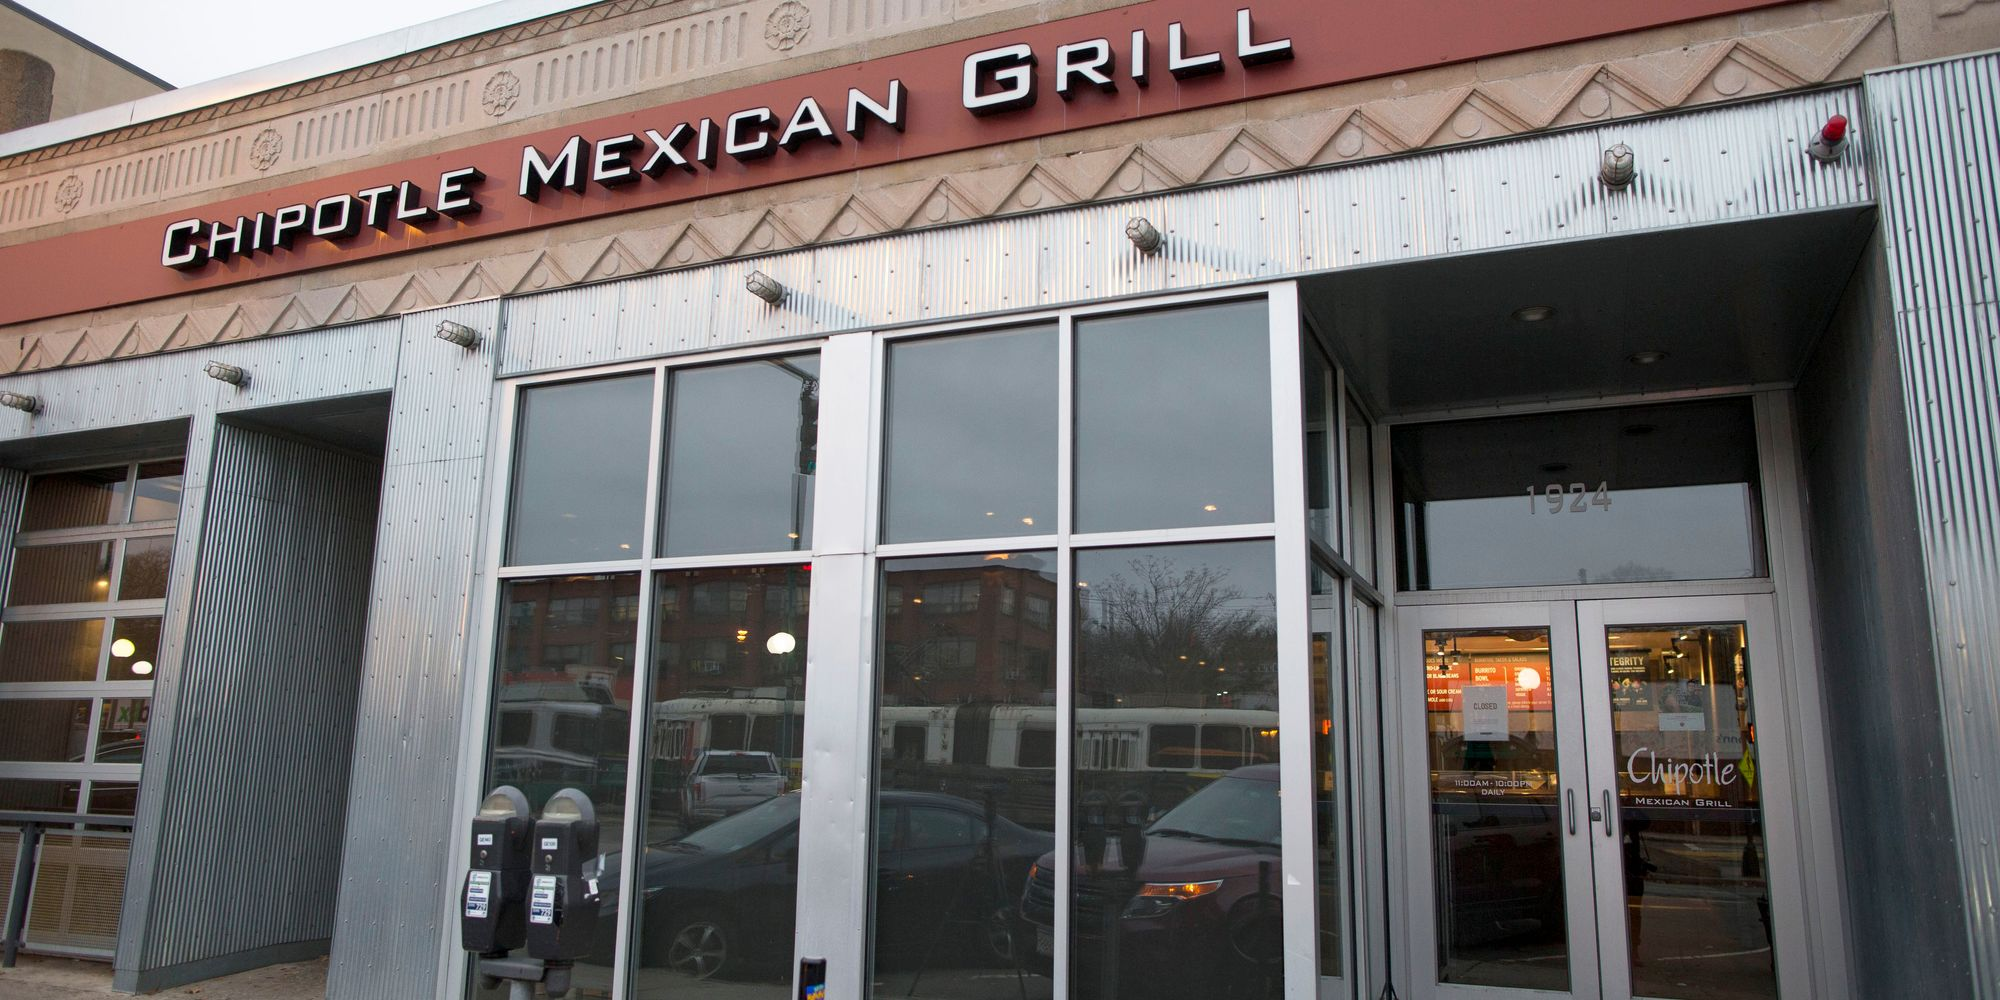 Location results chipotle mexican grill lobster house - Chipotle mexican grill ticker symbol ...